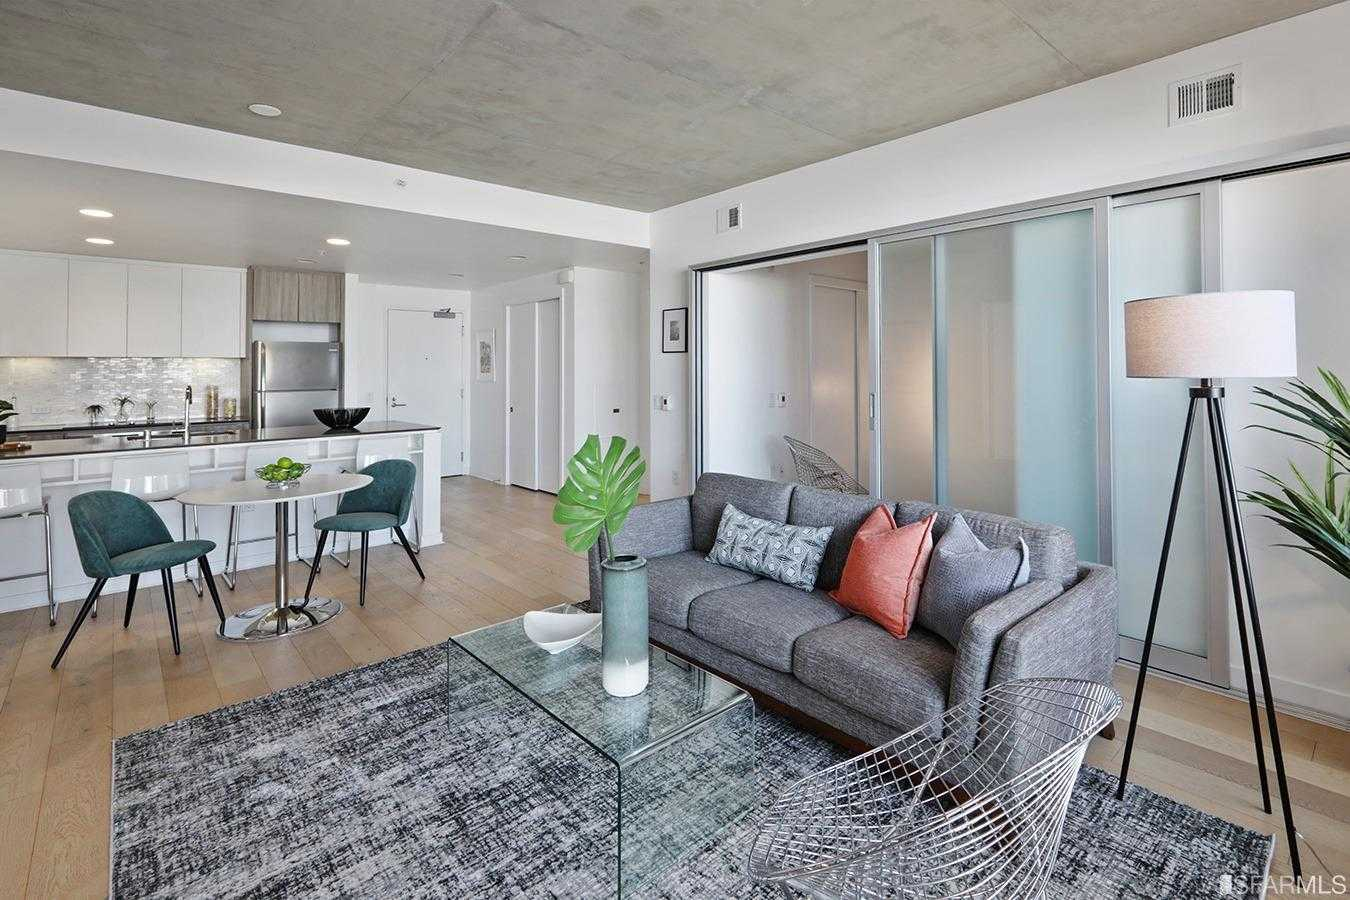 $1,049,000 - 2Br/2Ba -  for Sale in San Francisco